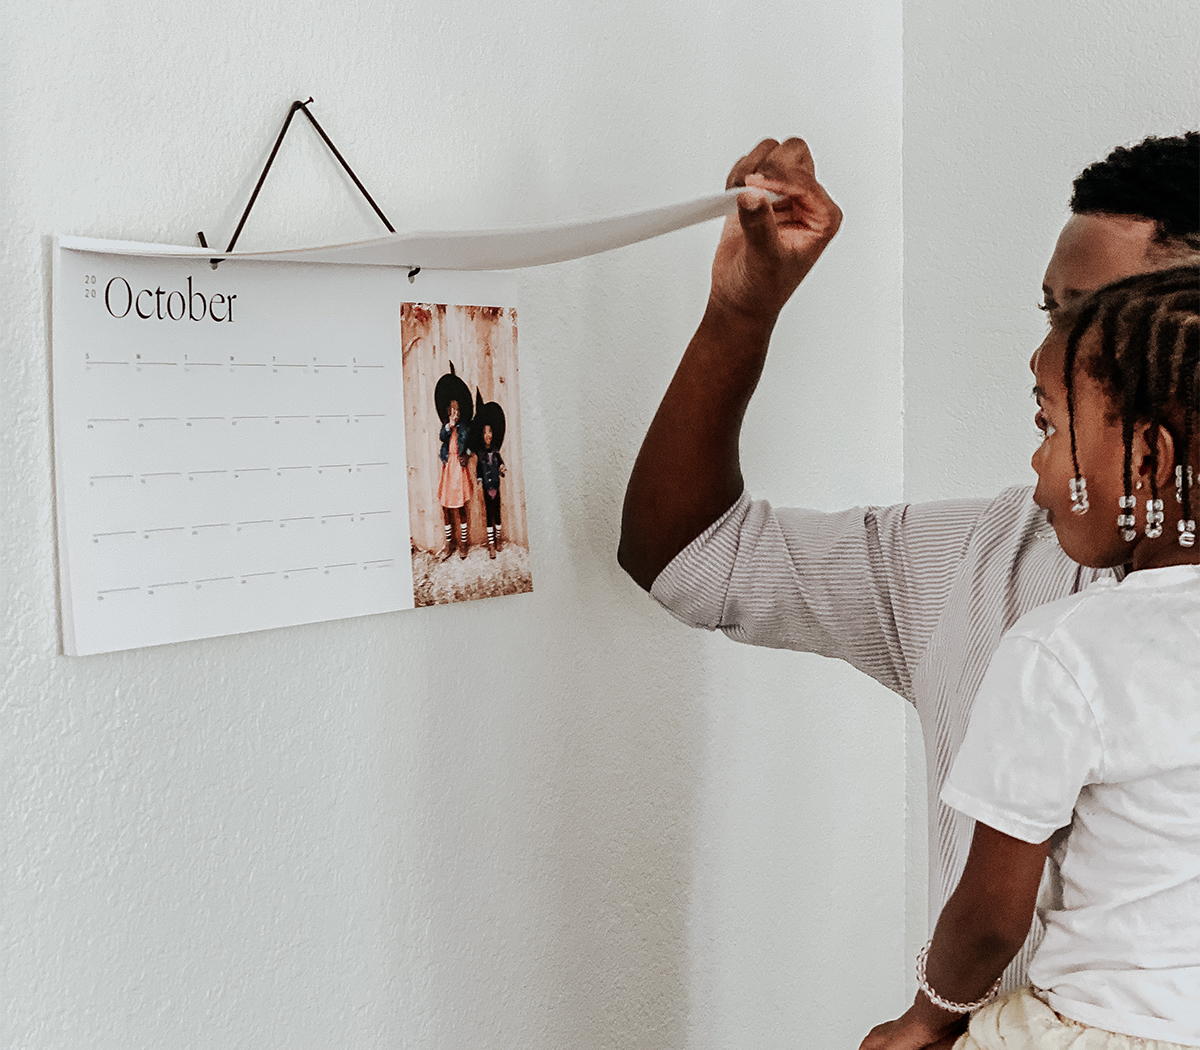 Photo by @mrshazleybaby of father and daughter flipping through Modern Wall Calendar